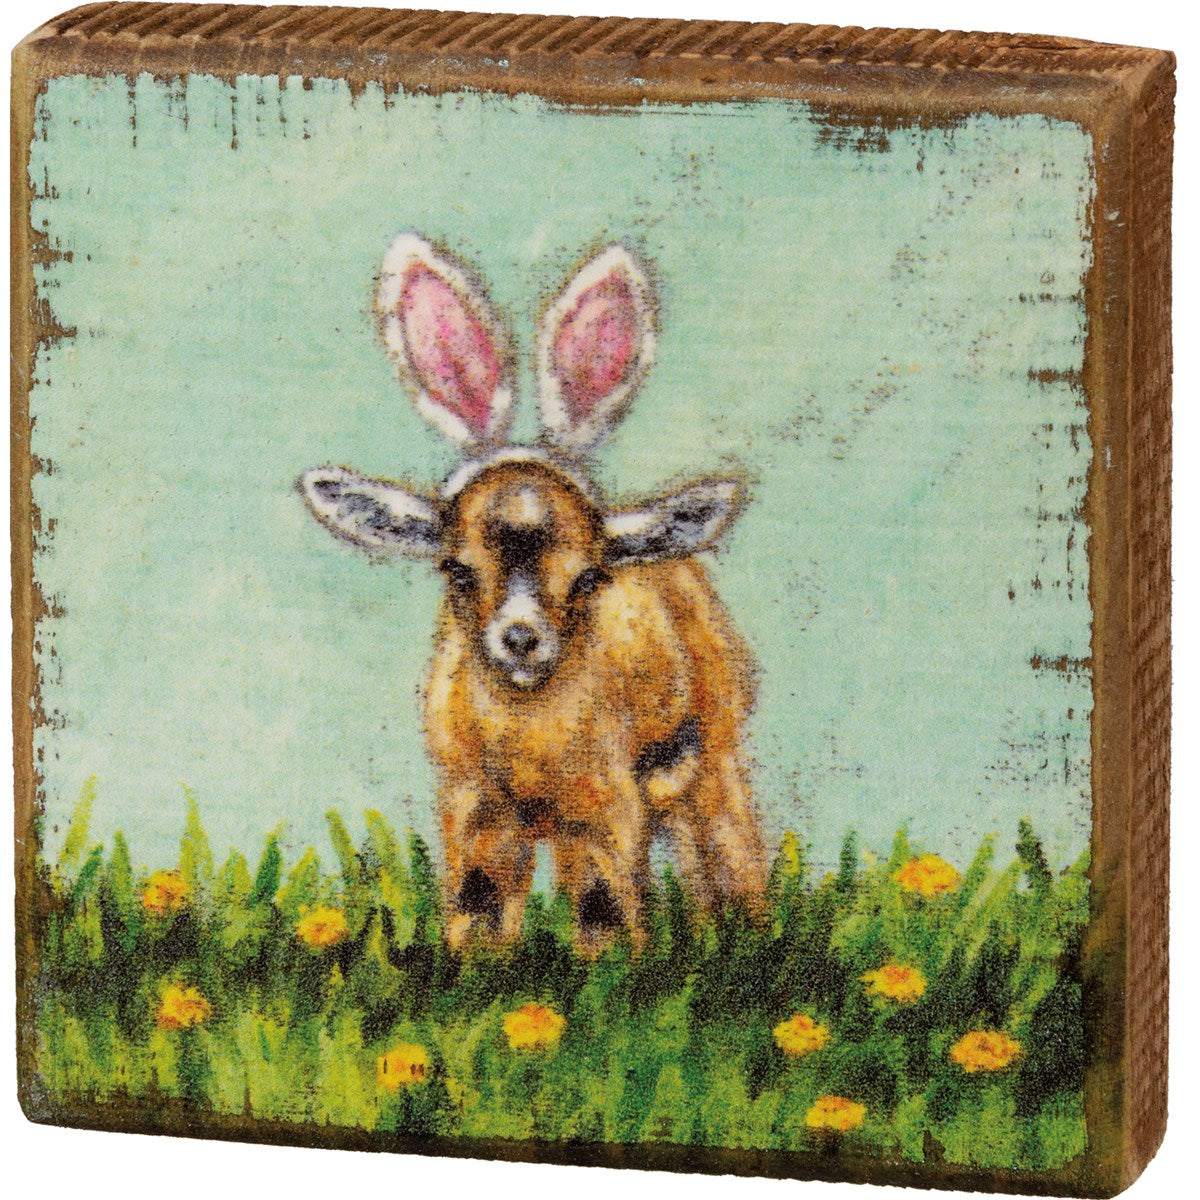 Goat with Bunny Ears Wood Block Picture